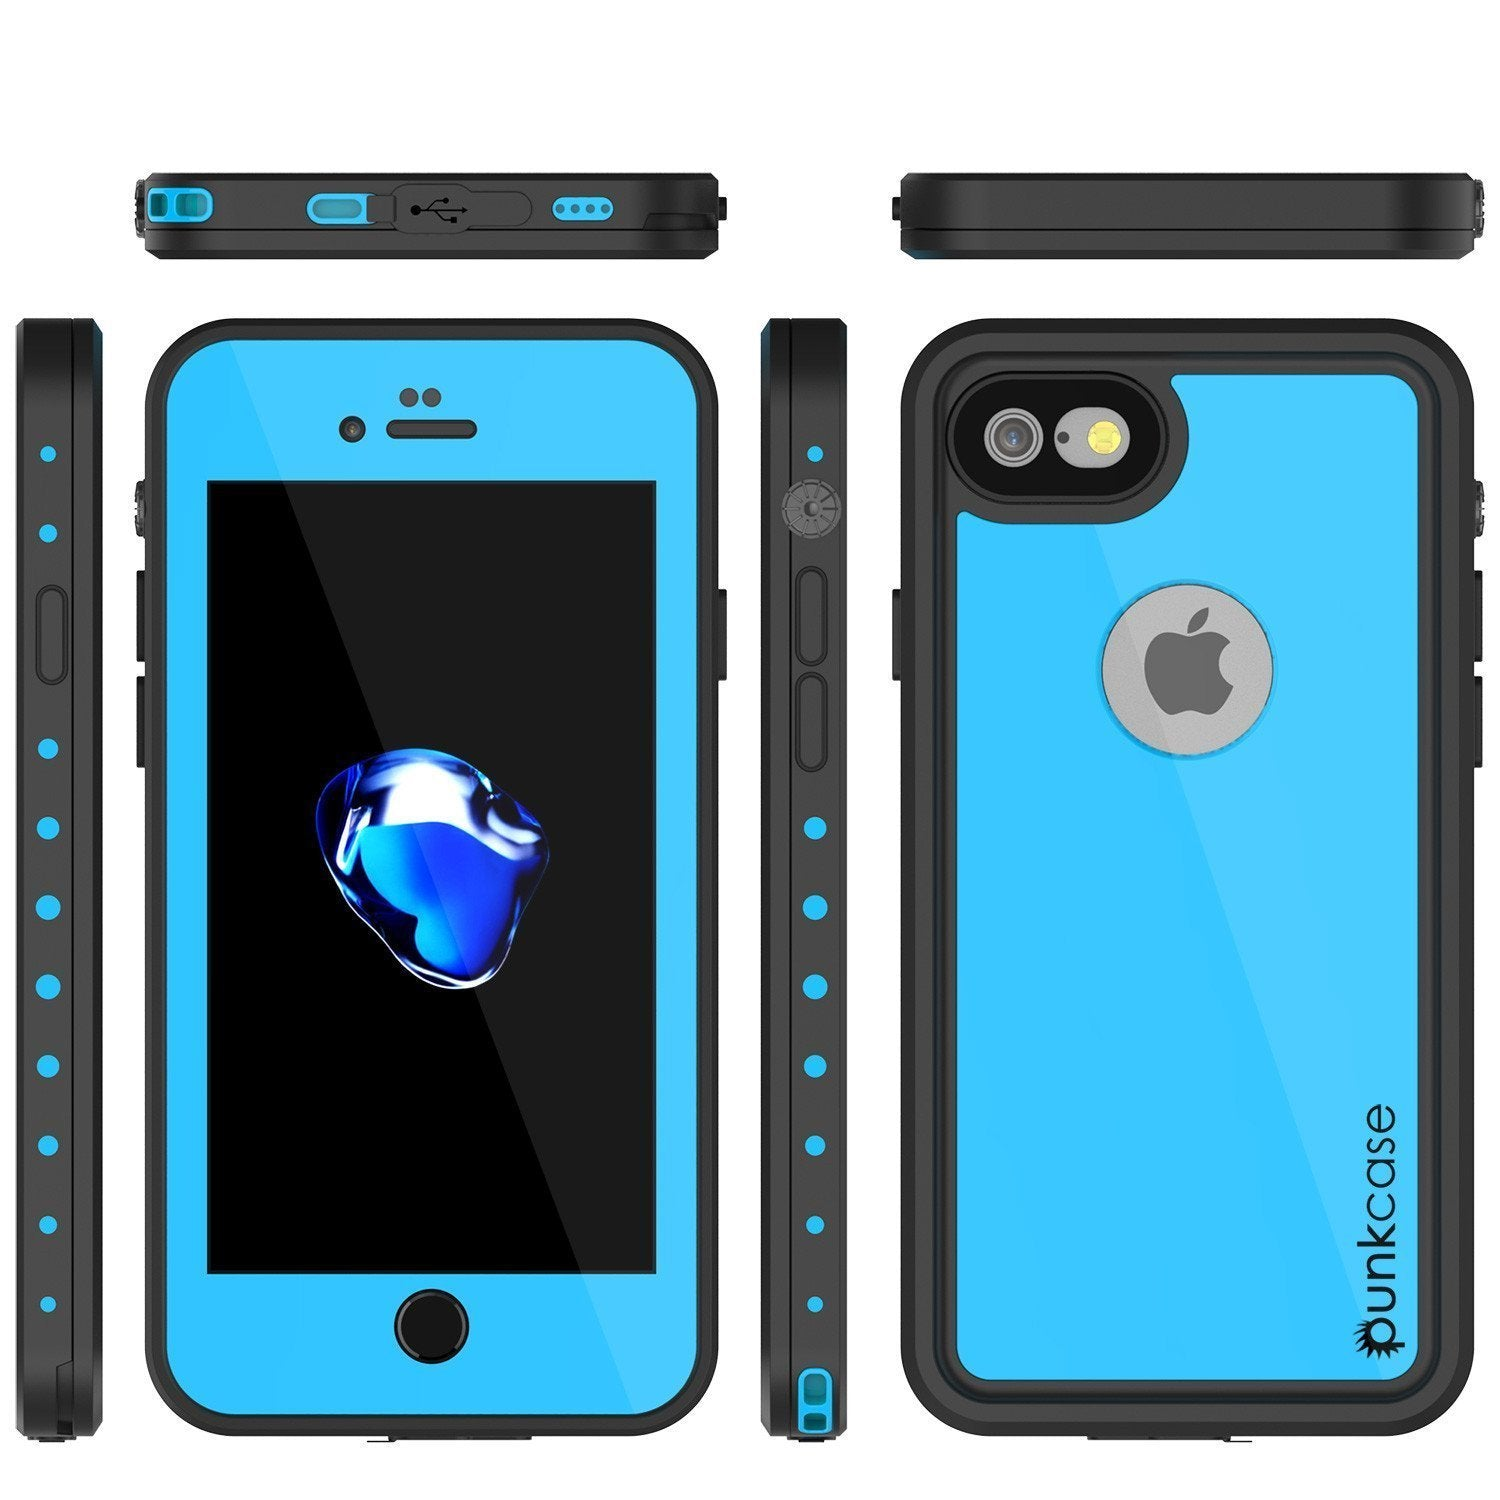 iPhone 8 Waterproof Case, Punkcase [Light Blue] [StudStar Series]  [Slim Fit] [IP68 Certified] [Dirt/Snow Proof]